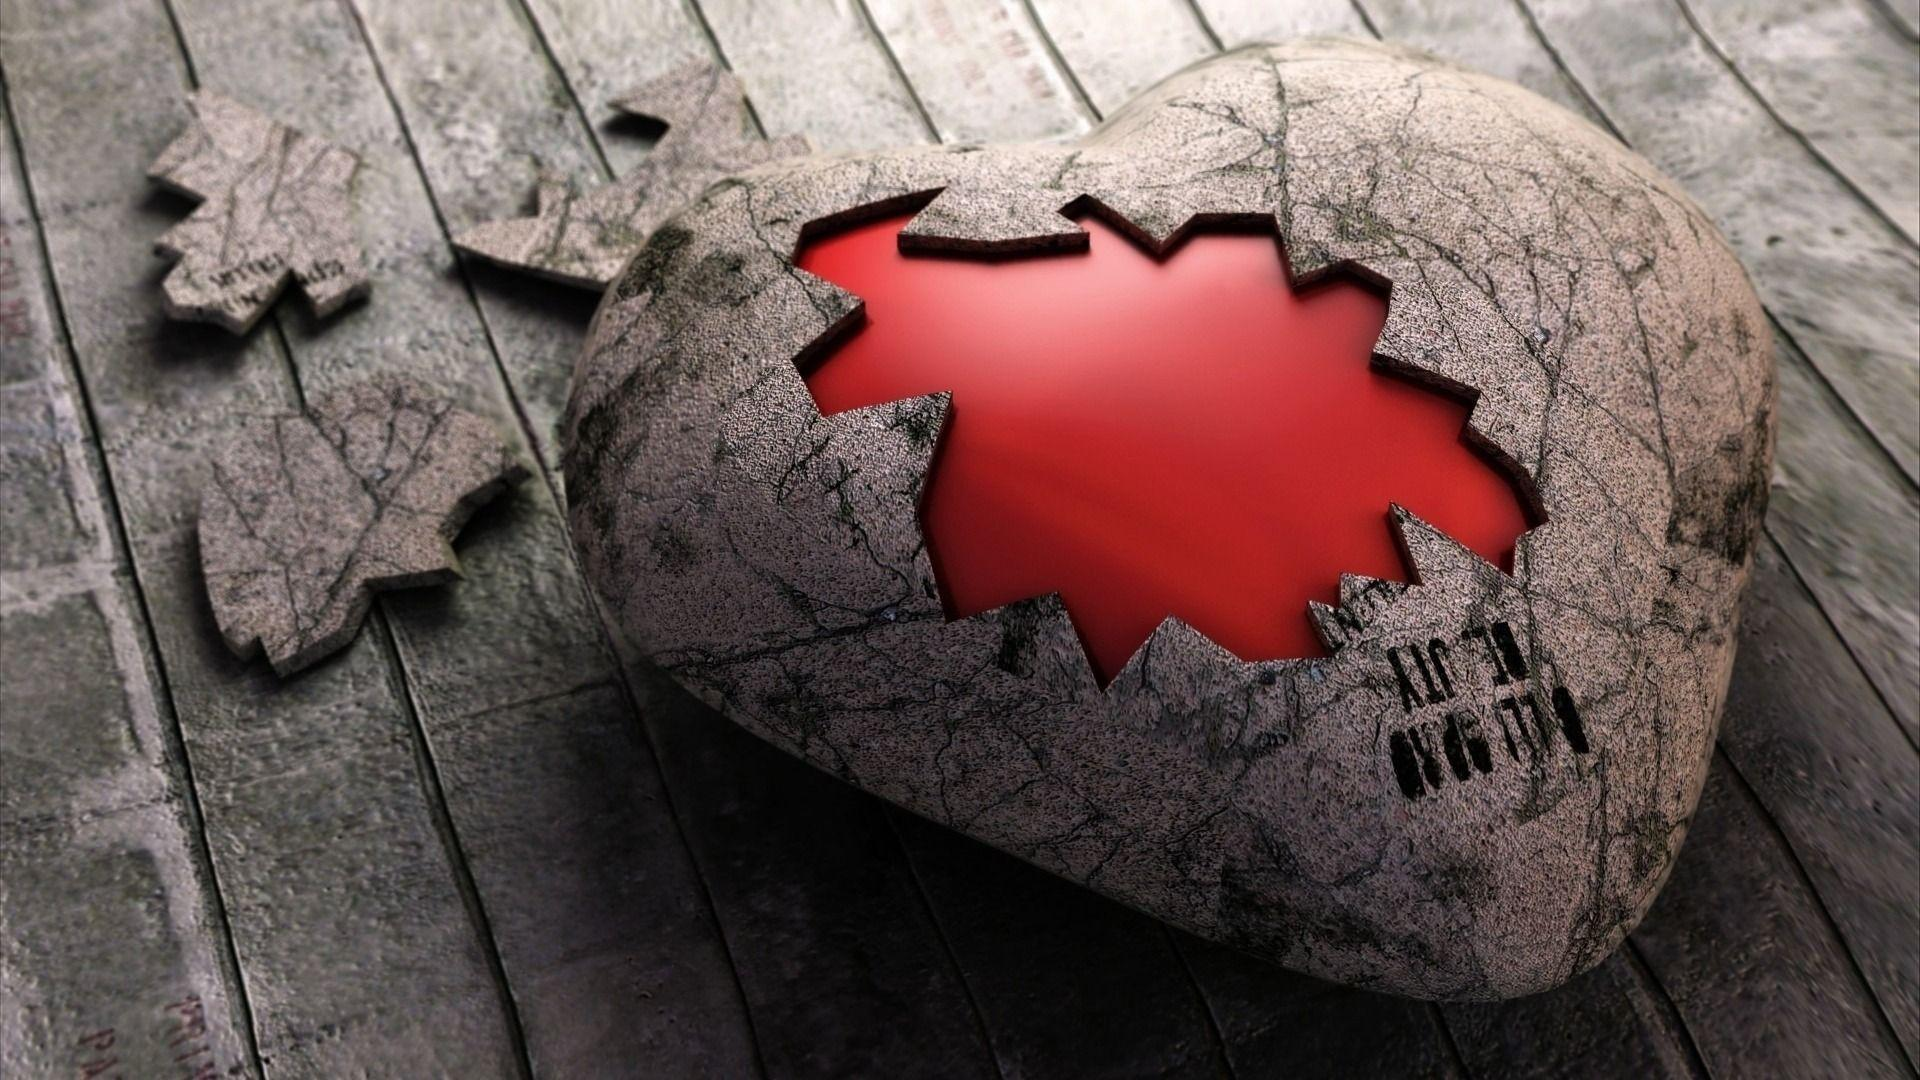 Broken Heart Wallpapers 1920x1080